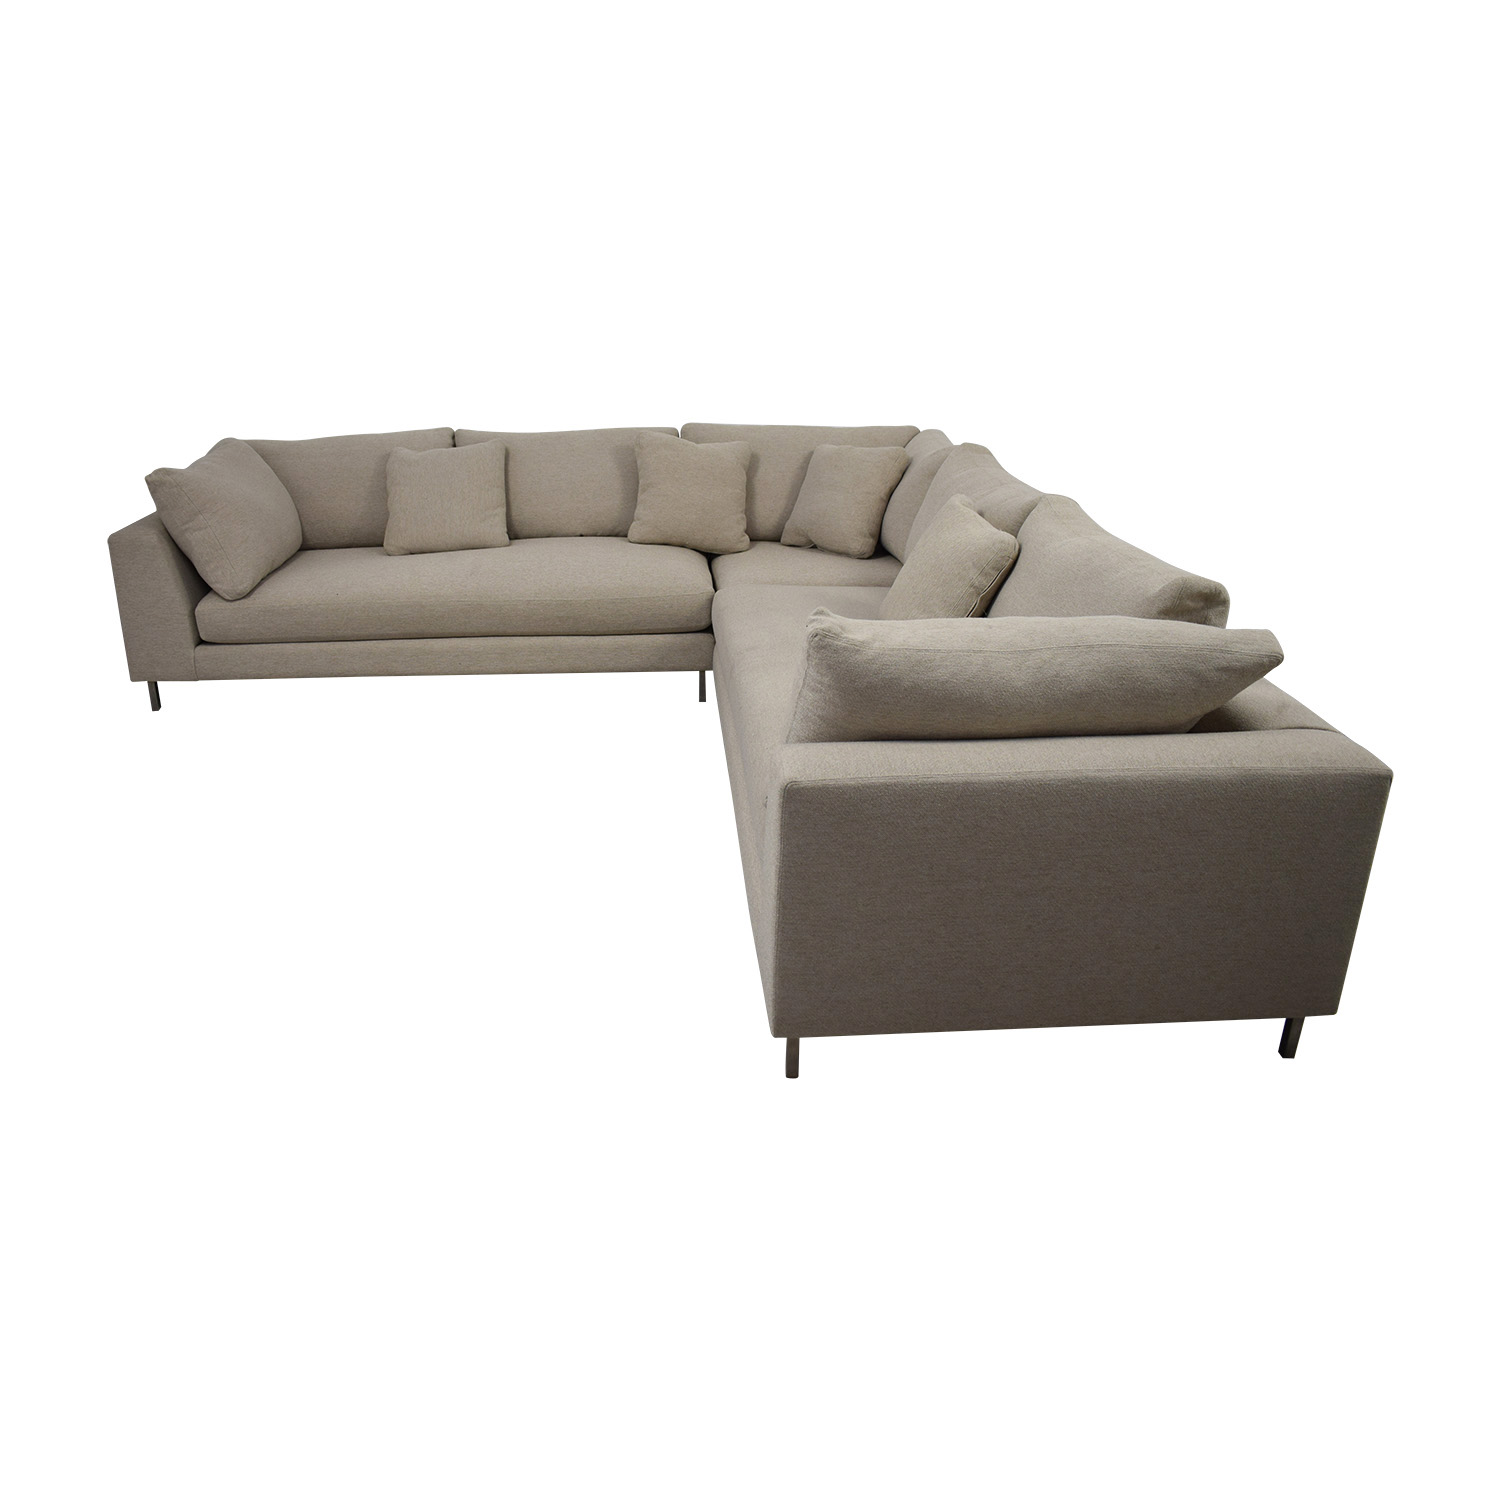 Room & Board Room & Board Beige L-Shaped Sectional nyc